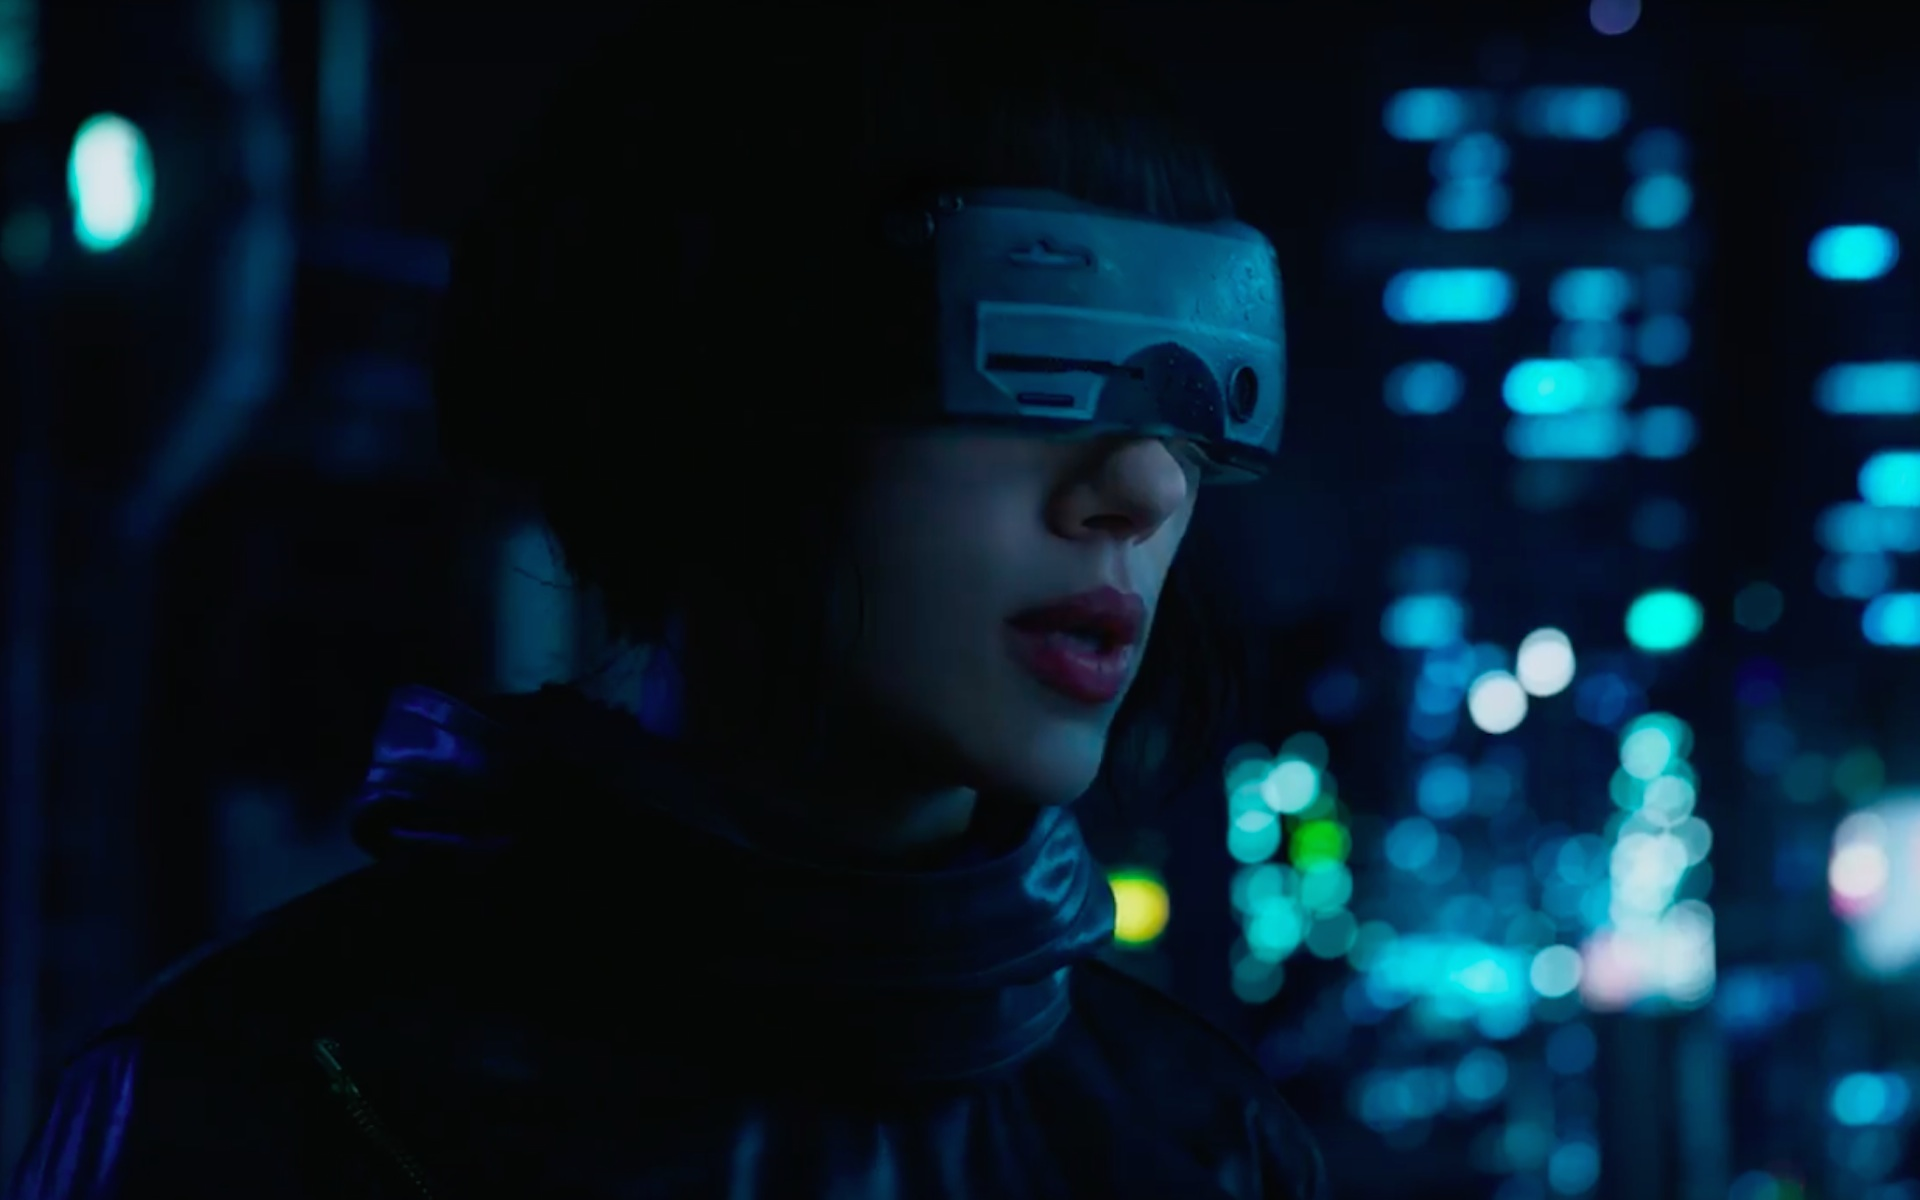 Ghost In The Shell 2017 Hd Wallpaper Background Image